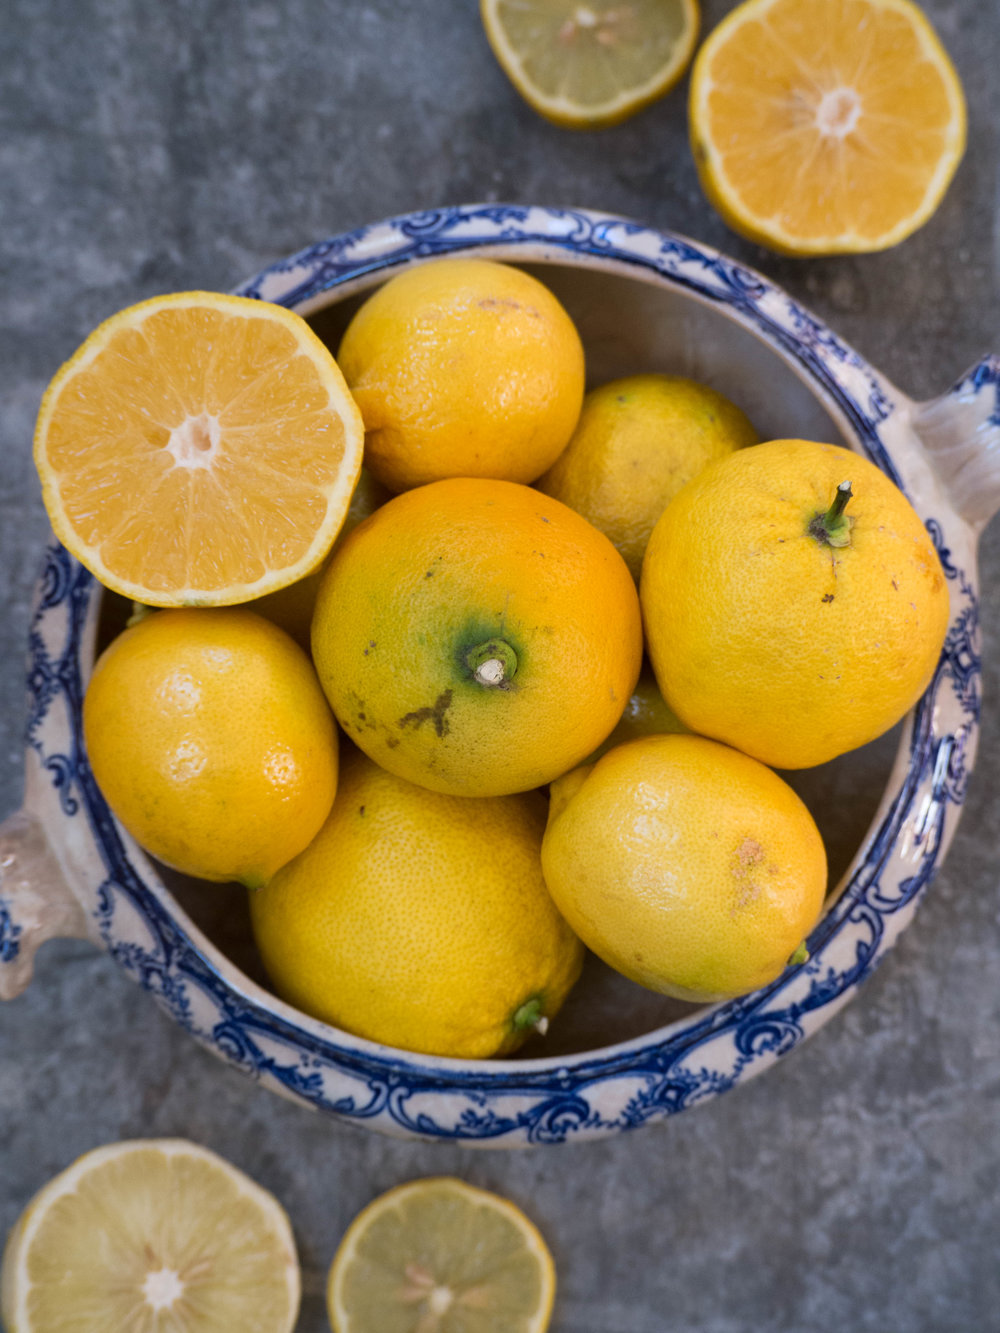 Winter Citrus - Lemons, Bergamots & Lemonades